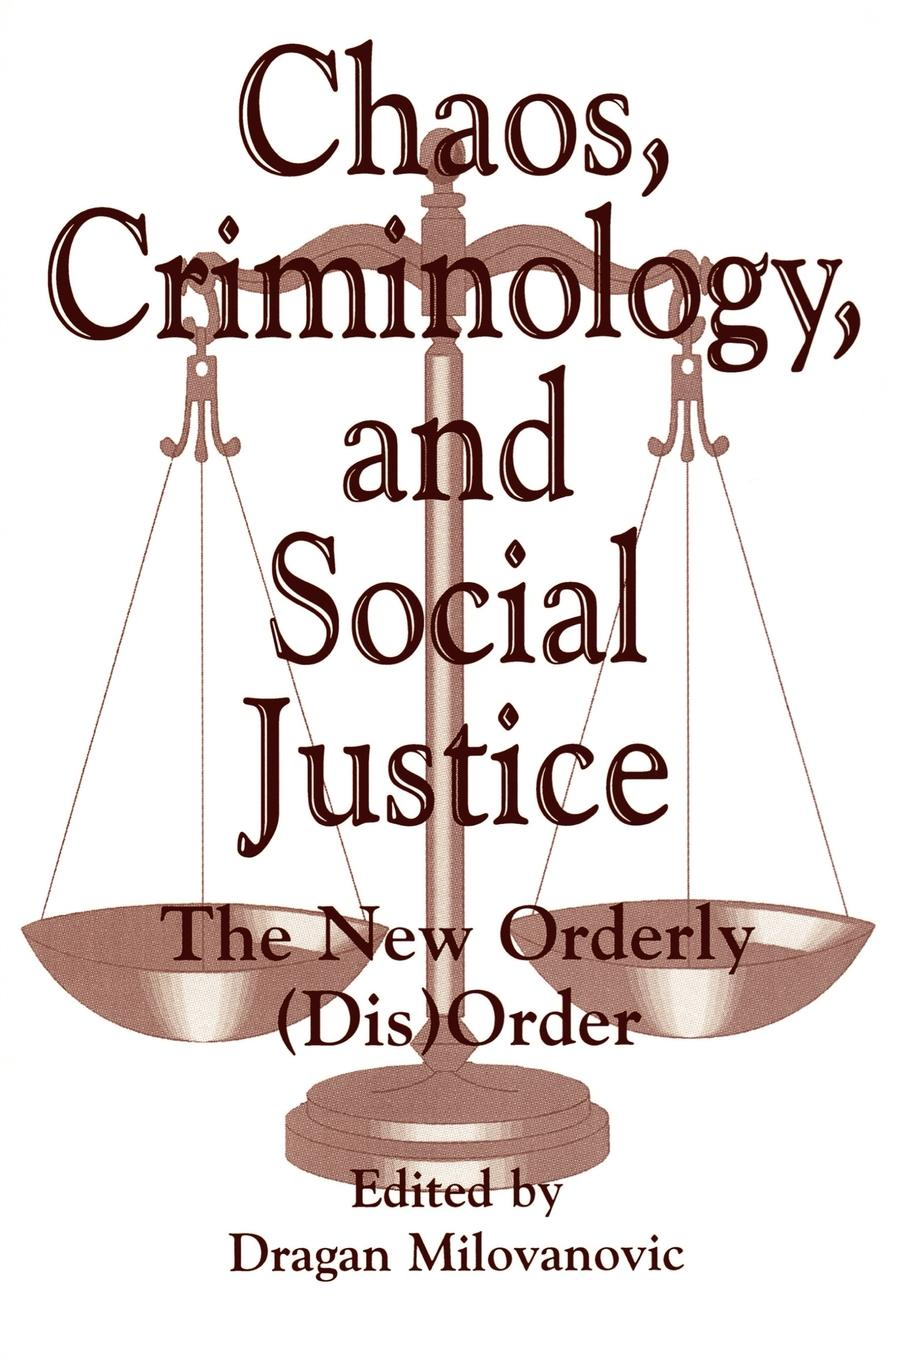 Chaos, Criminology, and Social Justice. The New Orderly (Dis)Order on the order of chaos social anthropology and the science of chaos